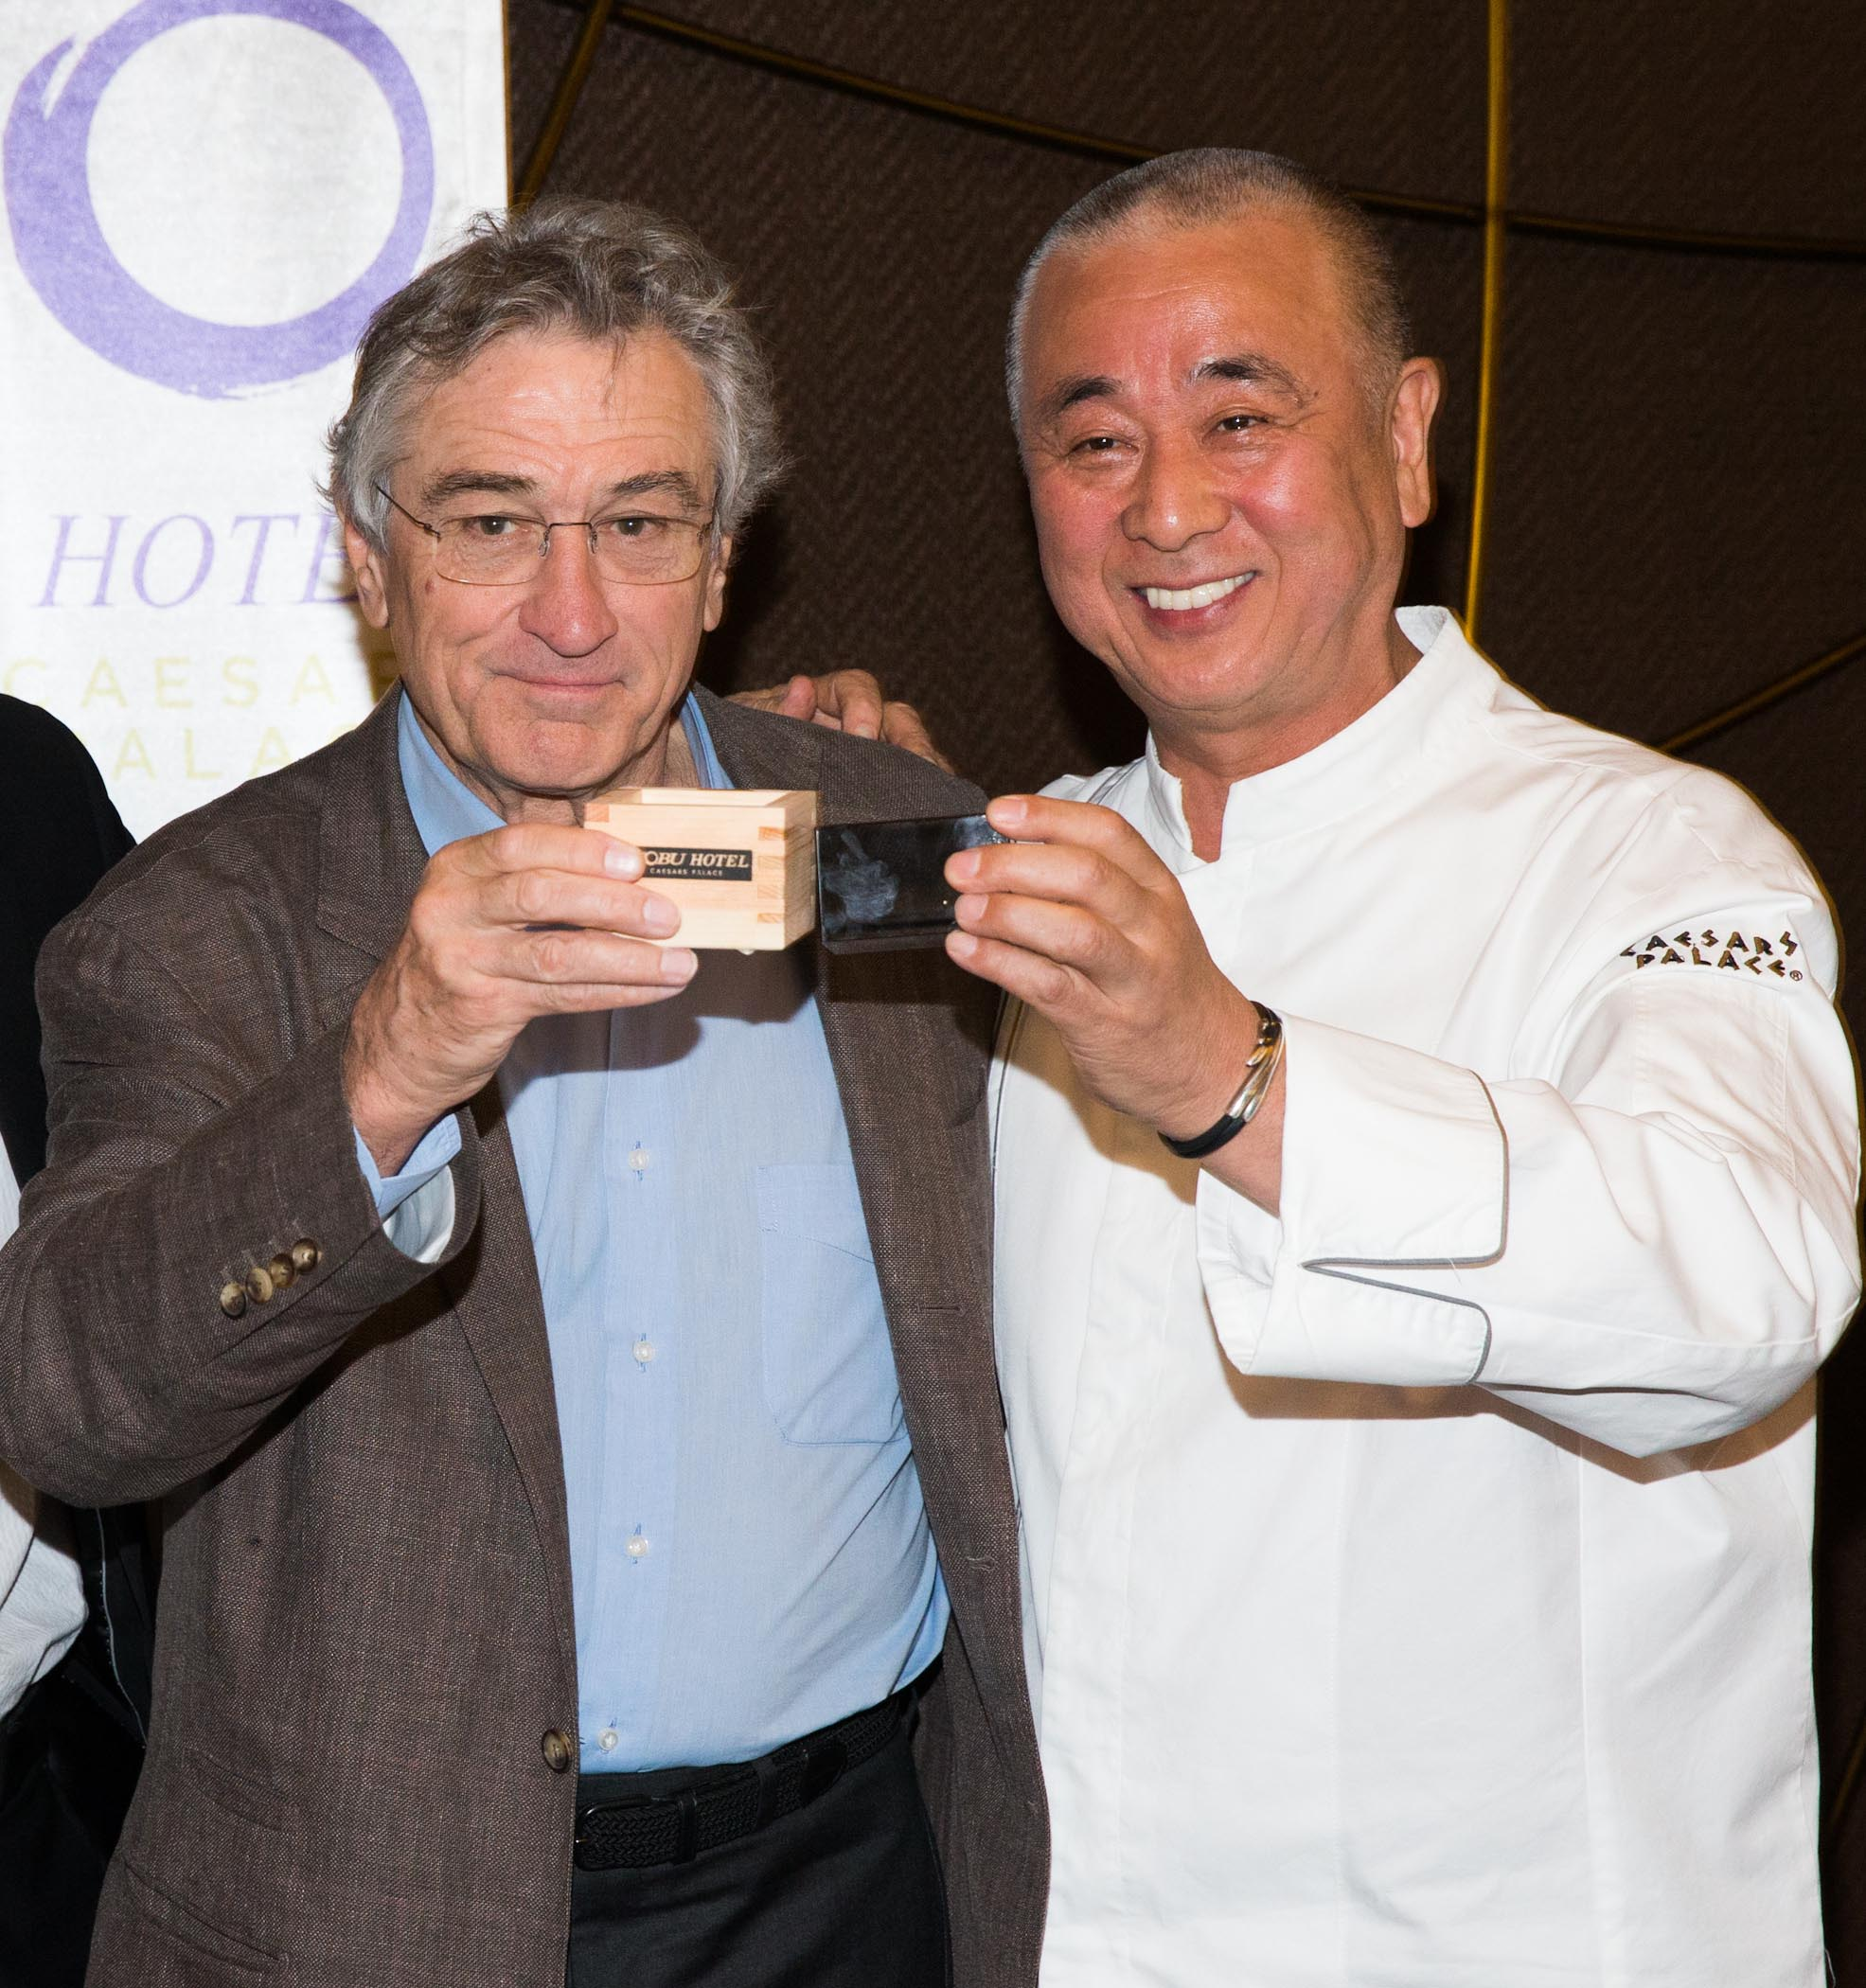 NOBU HOTEL Grand Opening with Robert De Niro at Caesars Palace in Las Vegas, NV